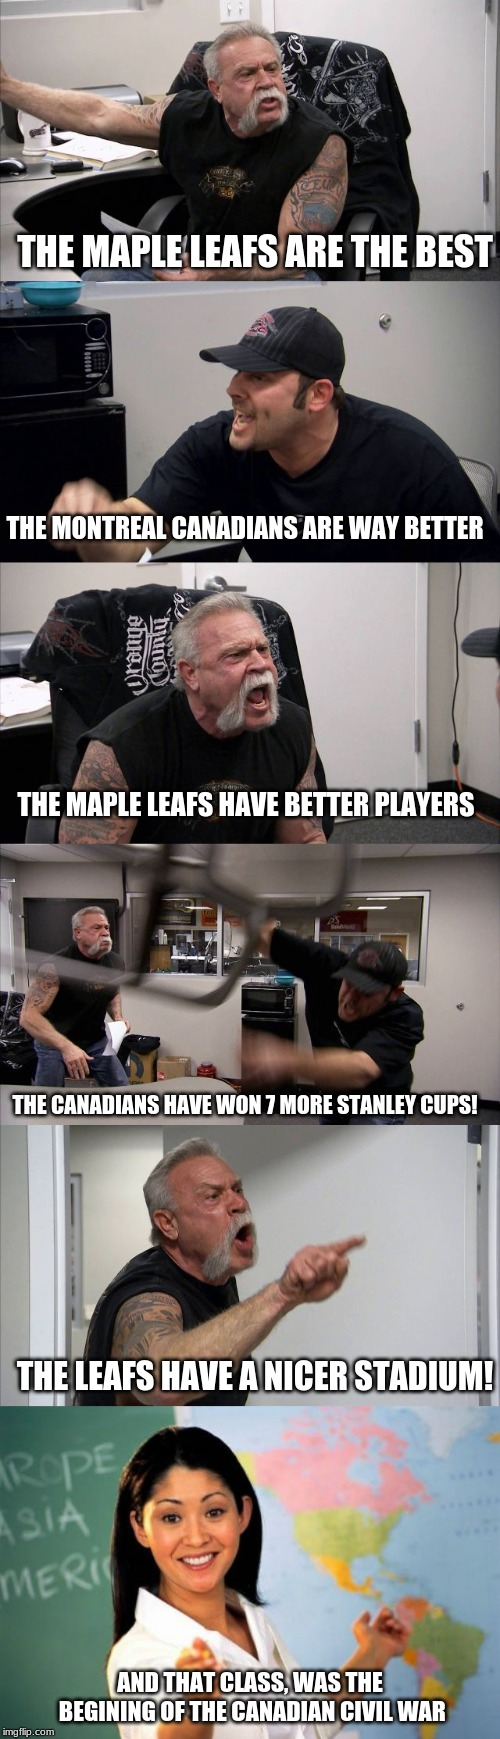 THE MAPLE LEAFS ARE THE BEST AND THAT CLASS, WAS THE BEGINING OF THE CANADIAN CIVIL WAR THE LEAFS HAVE A NICER STADIUM! THE CANADIANS HAVE W | image tagged in memes,unhelpful high school teacher,american chopper argument,canada,hockey,canadians | made w/ Imgflip meme maker